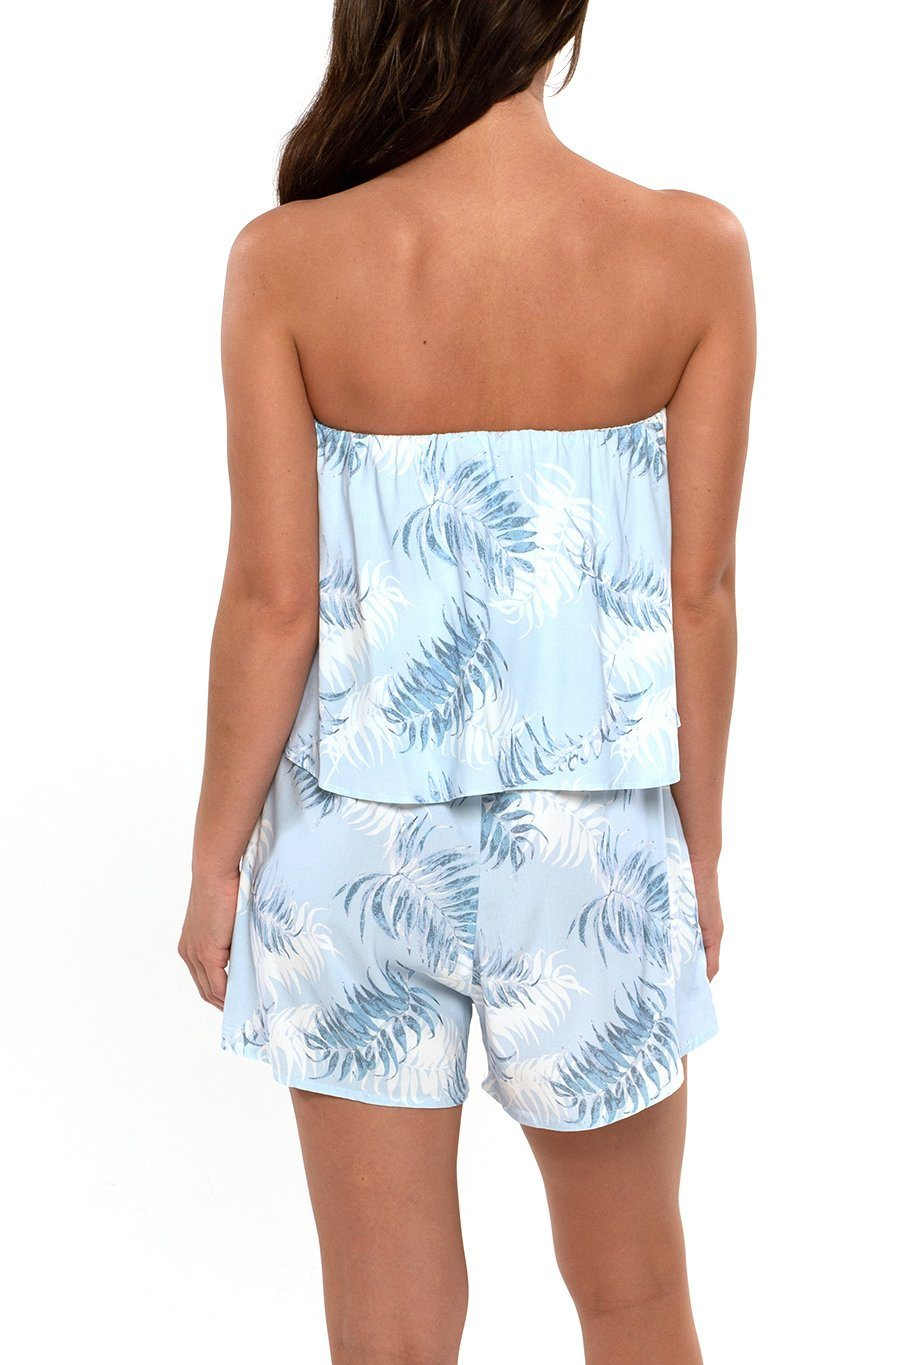 Montauk Romper - Blue Palms - Shore